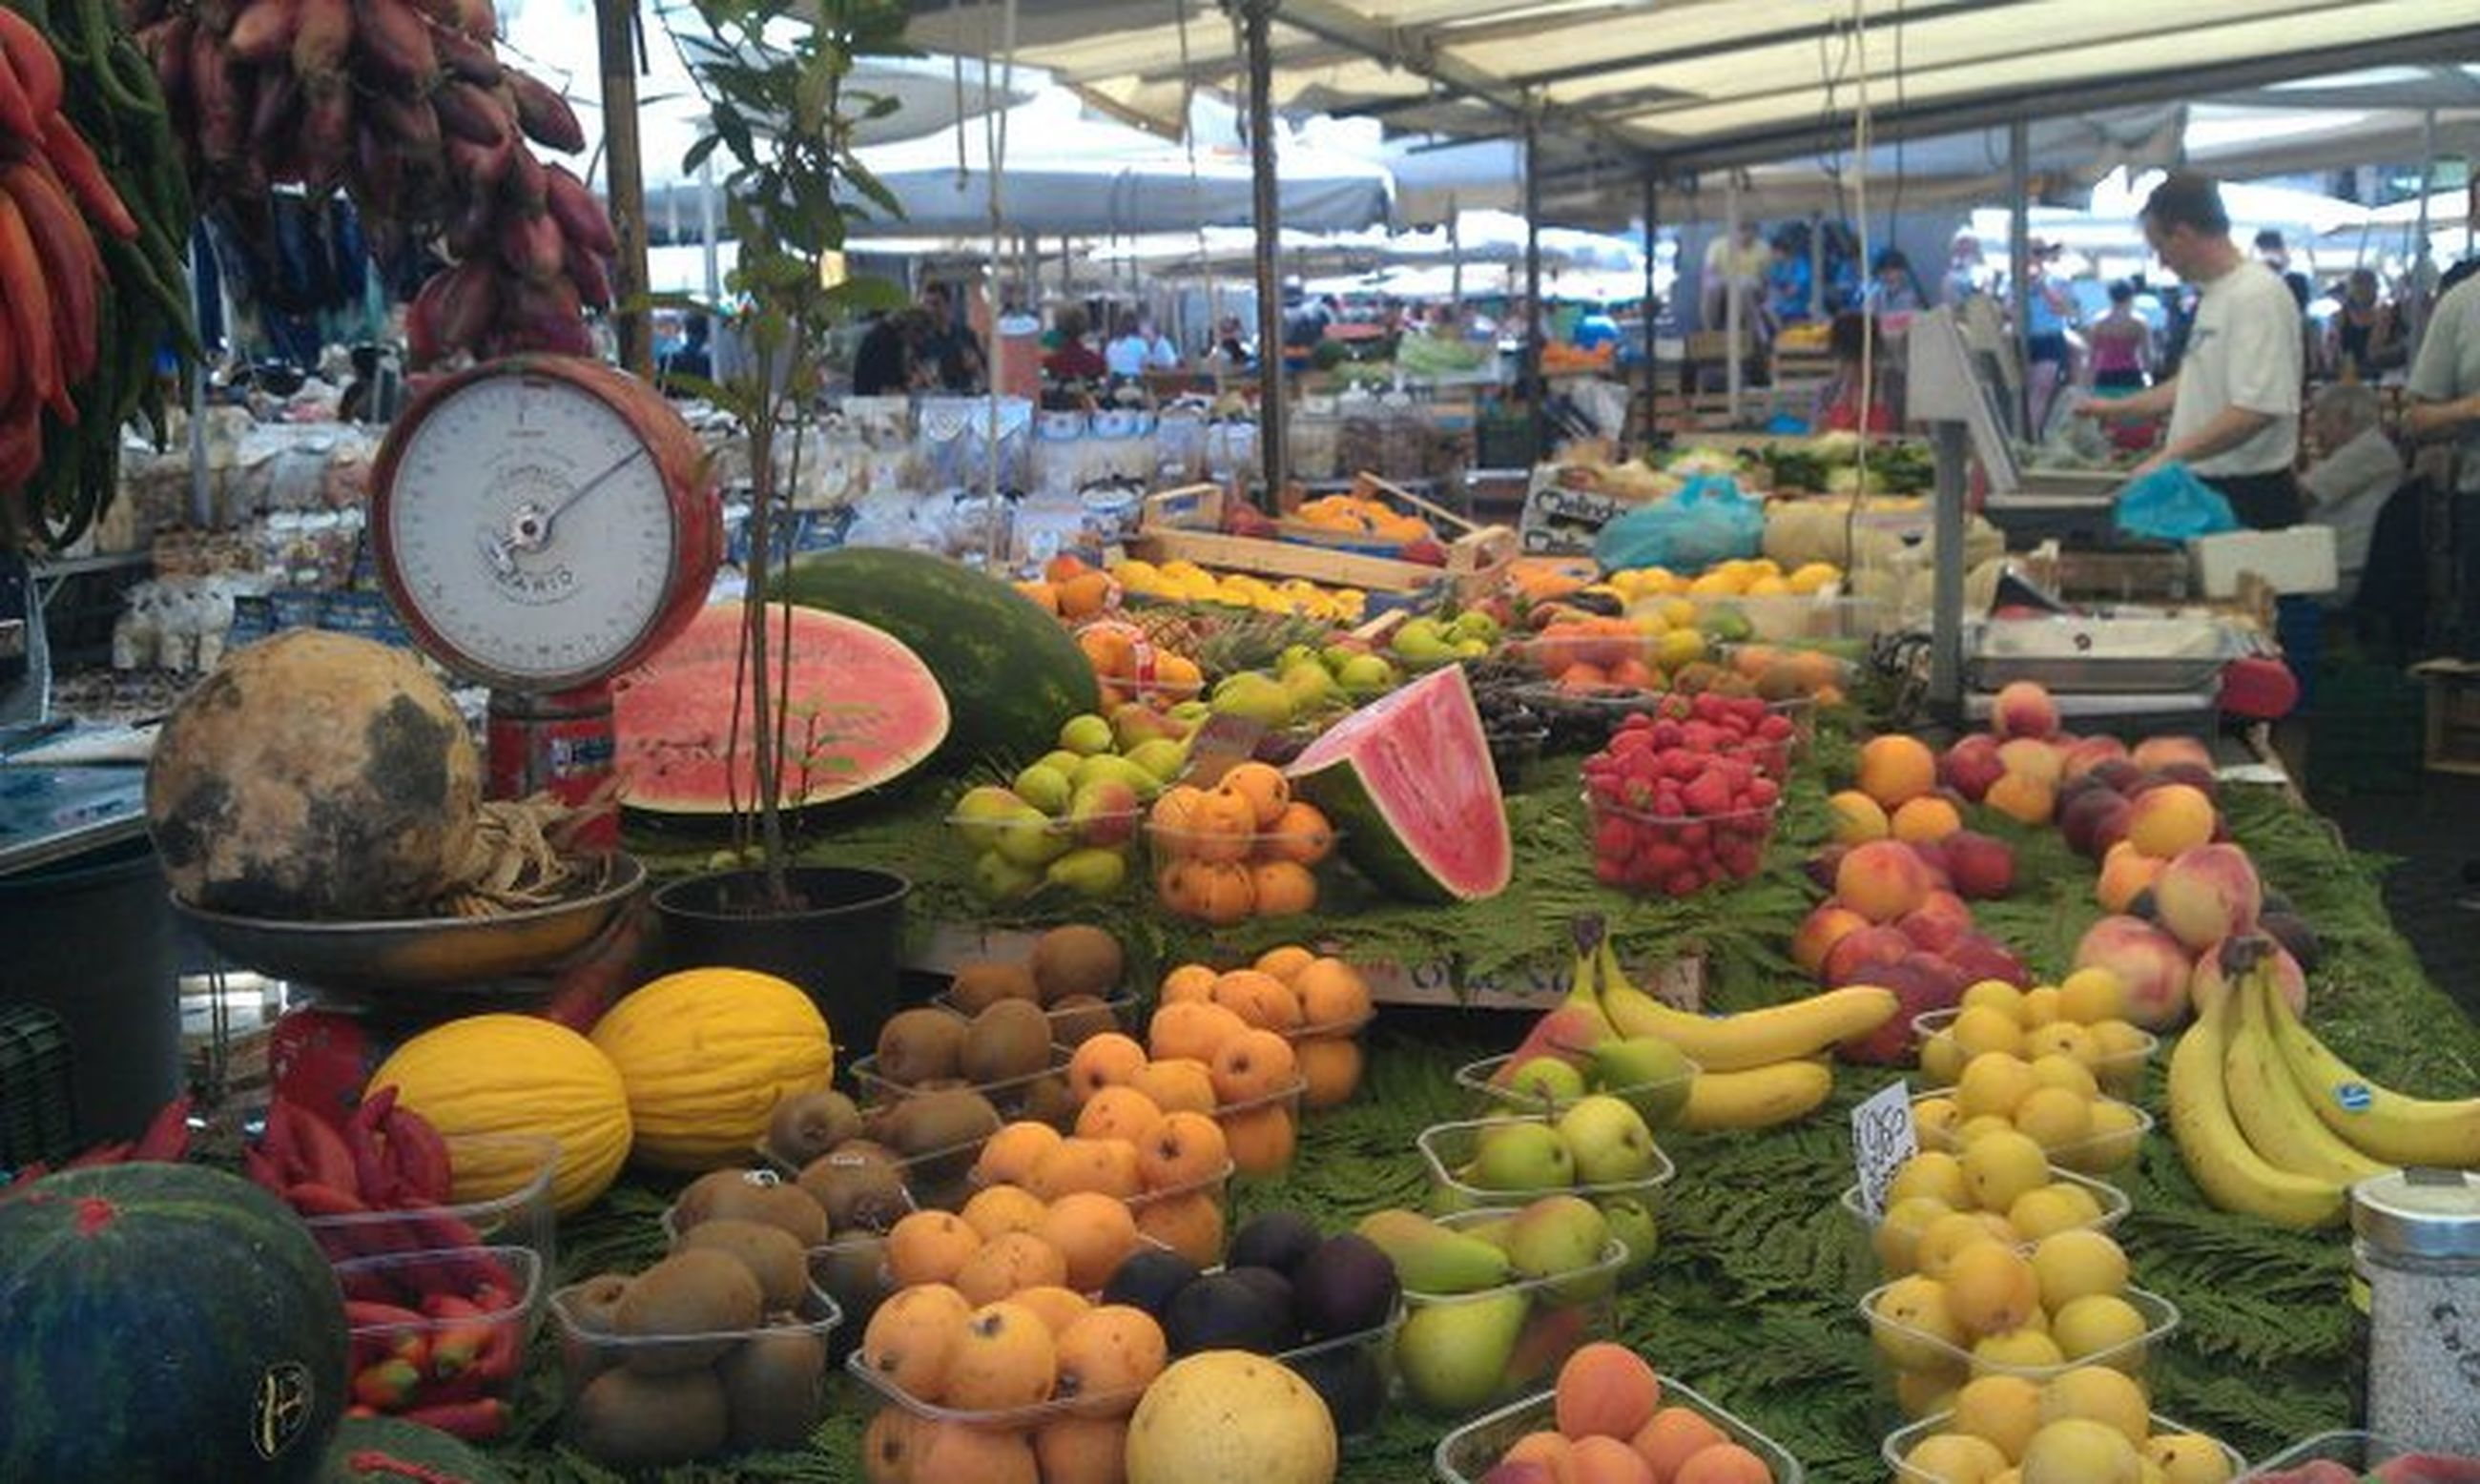 market stall, retail, market, for sale, food and drink, abundance, small business, choice, men, variation, freshness, person, large group of objects, consumerism, food, large group of people, selling, lifestyles, sale